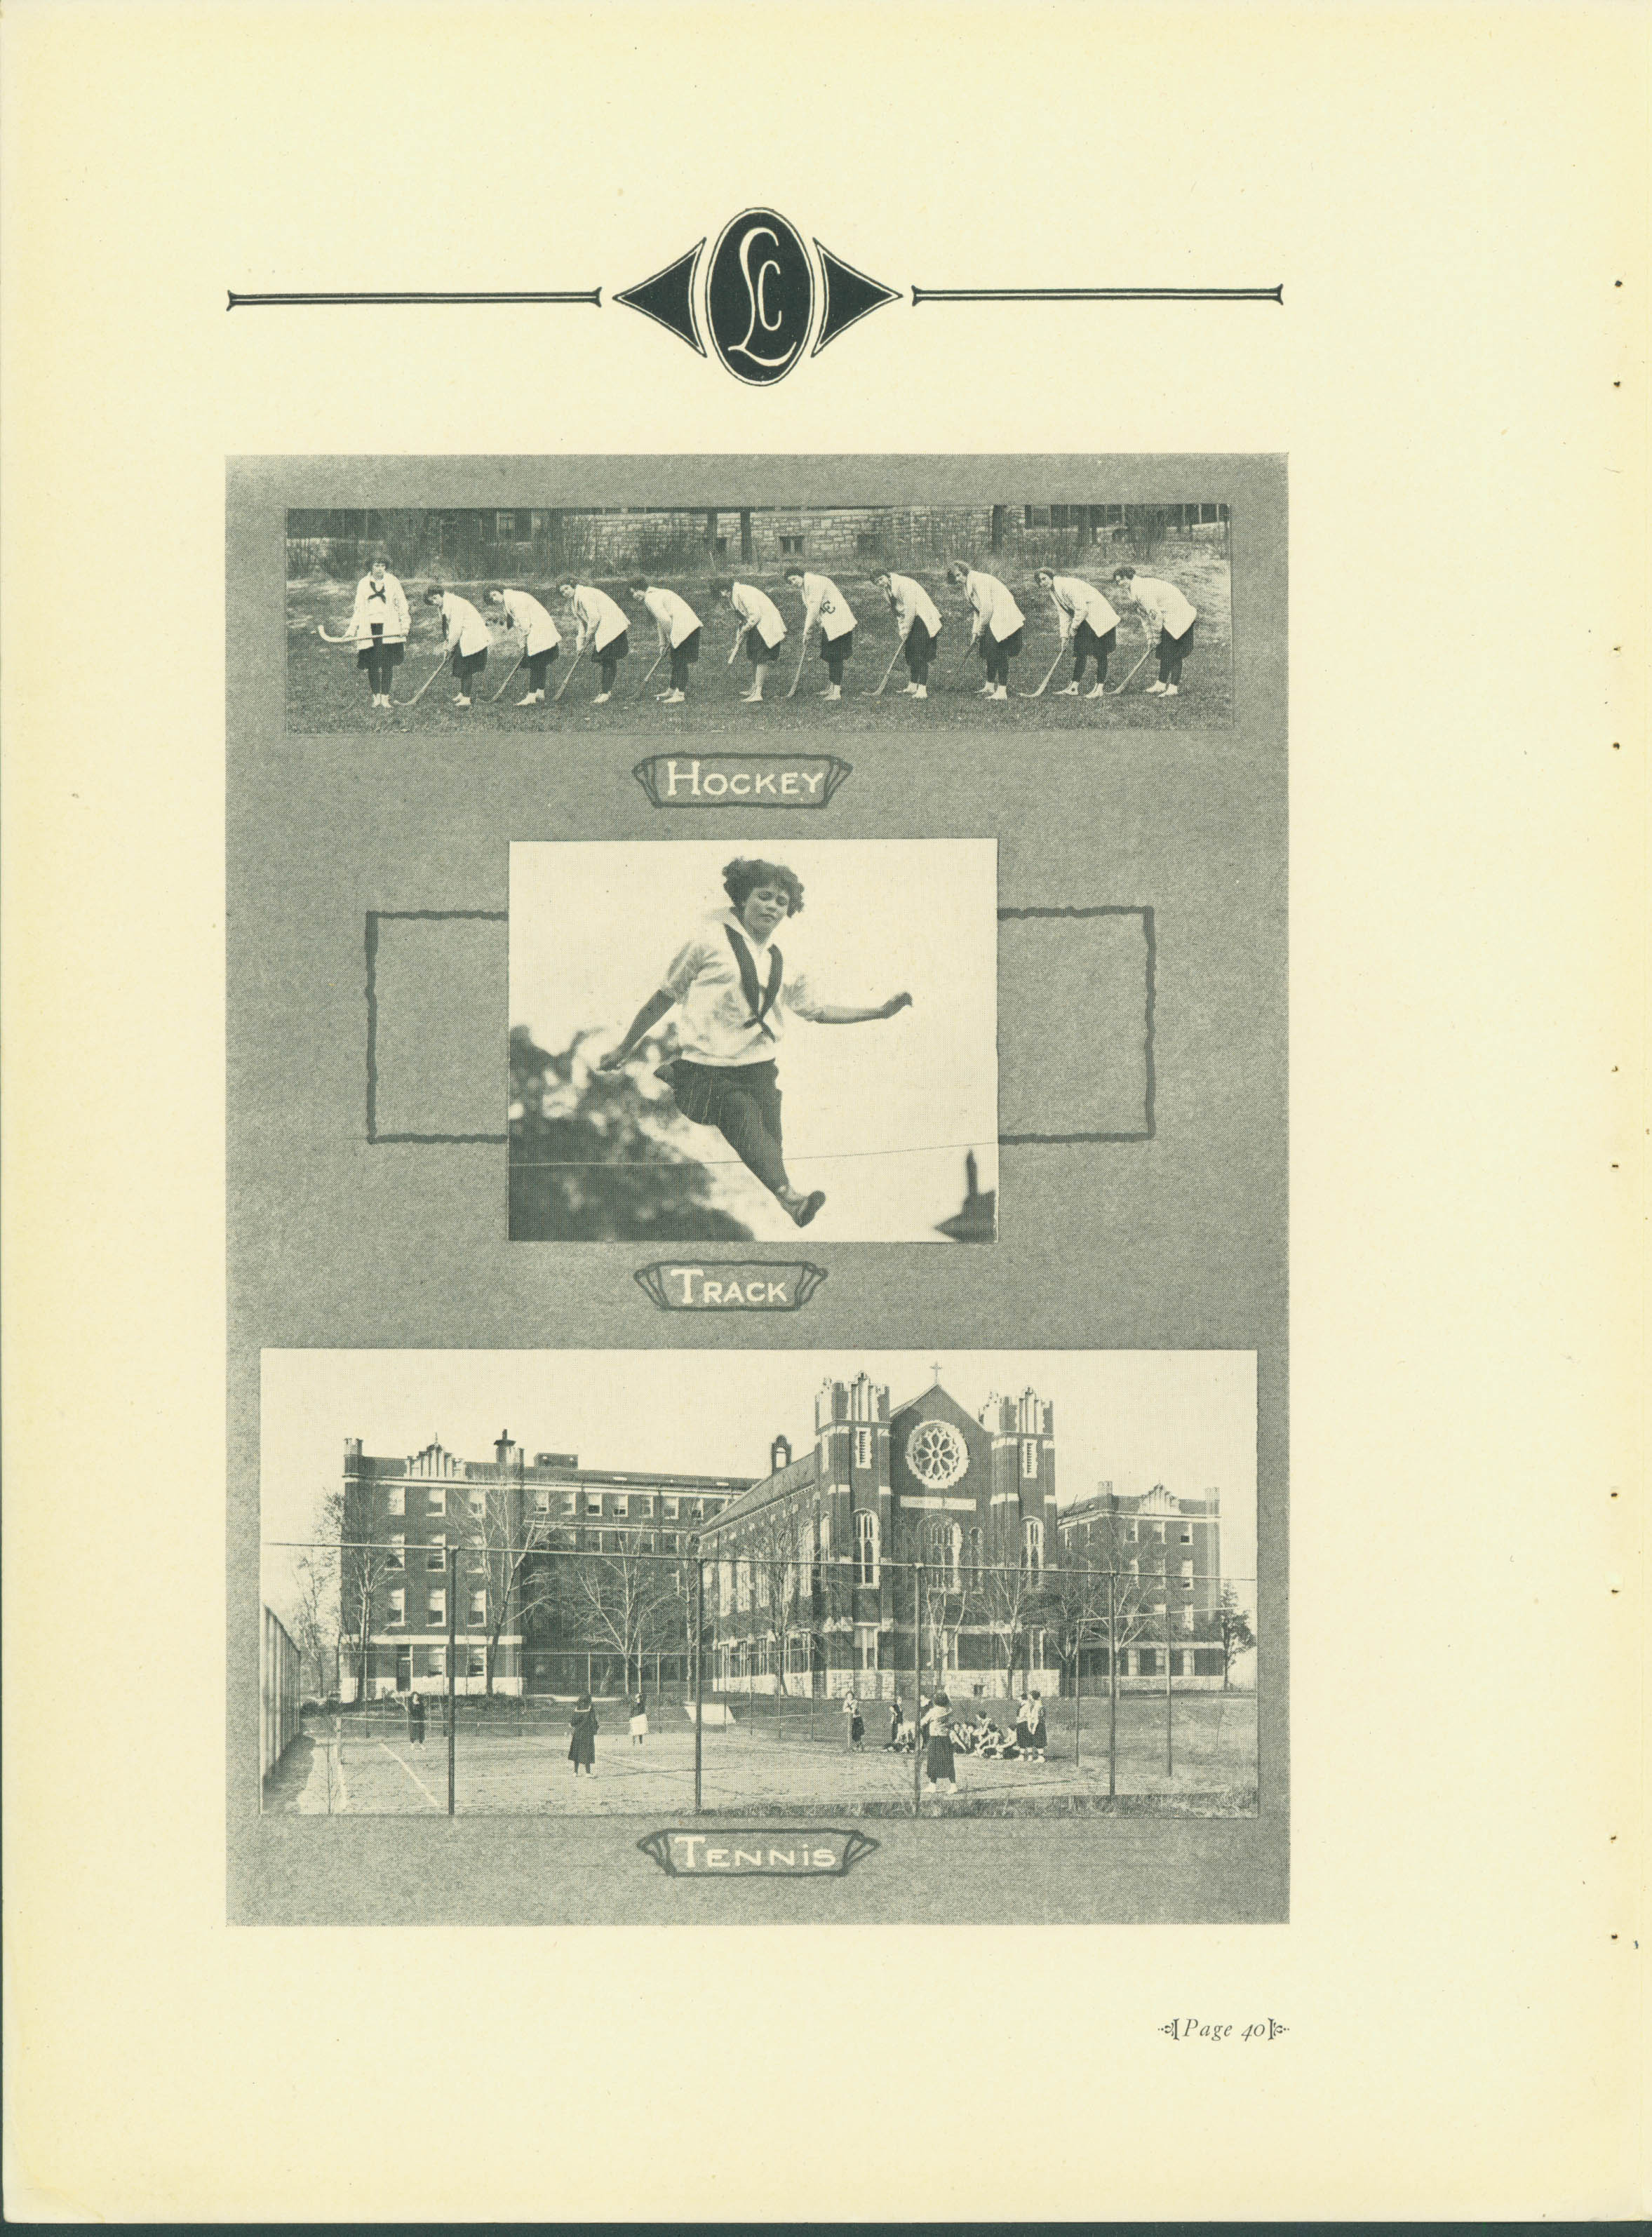 [Athletics page from 1924 Webster yearbook]